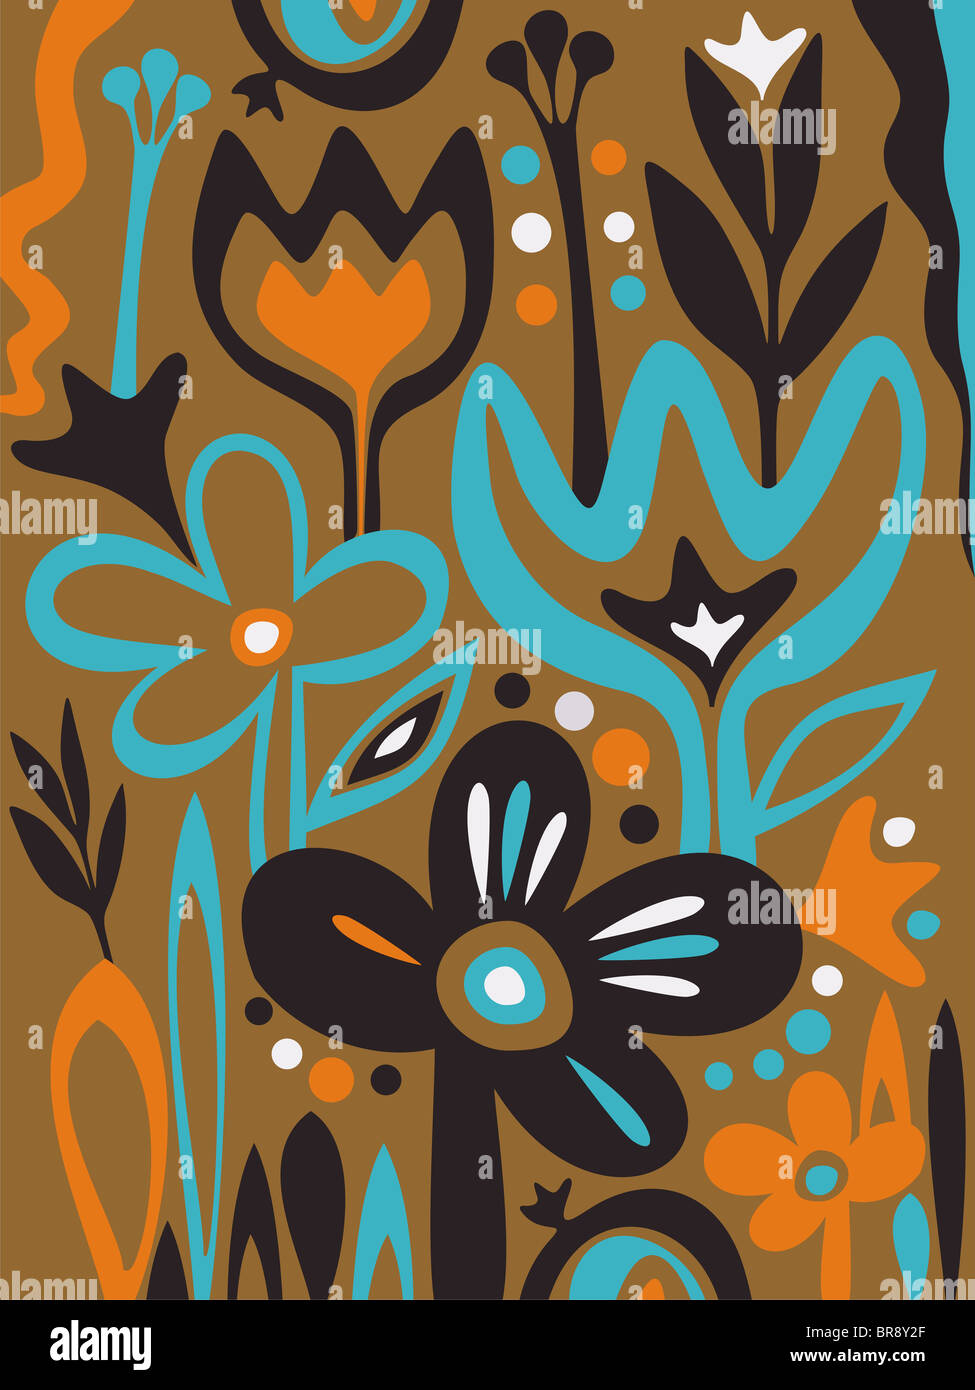 A whimsical illustration of wild flowers - Stock Image